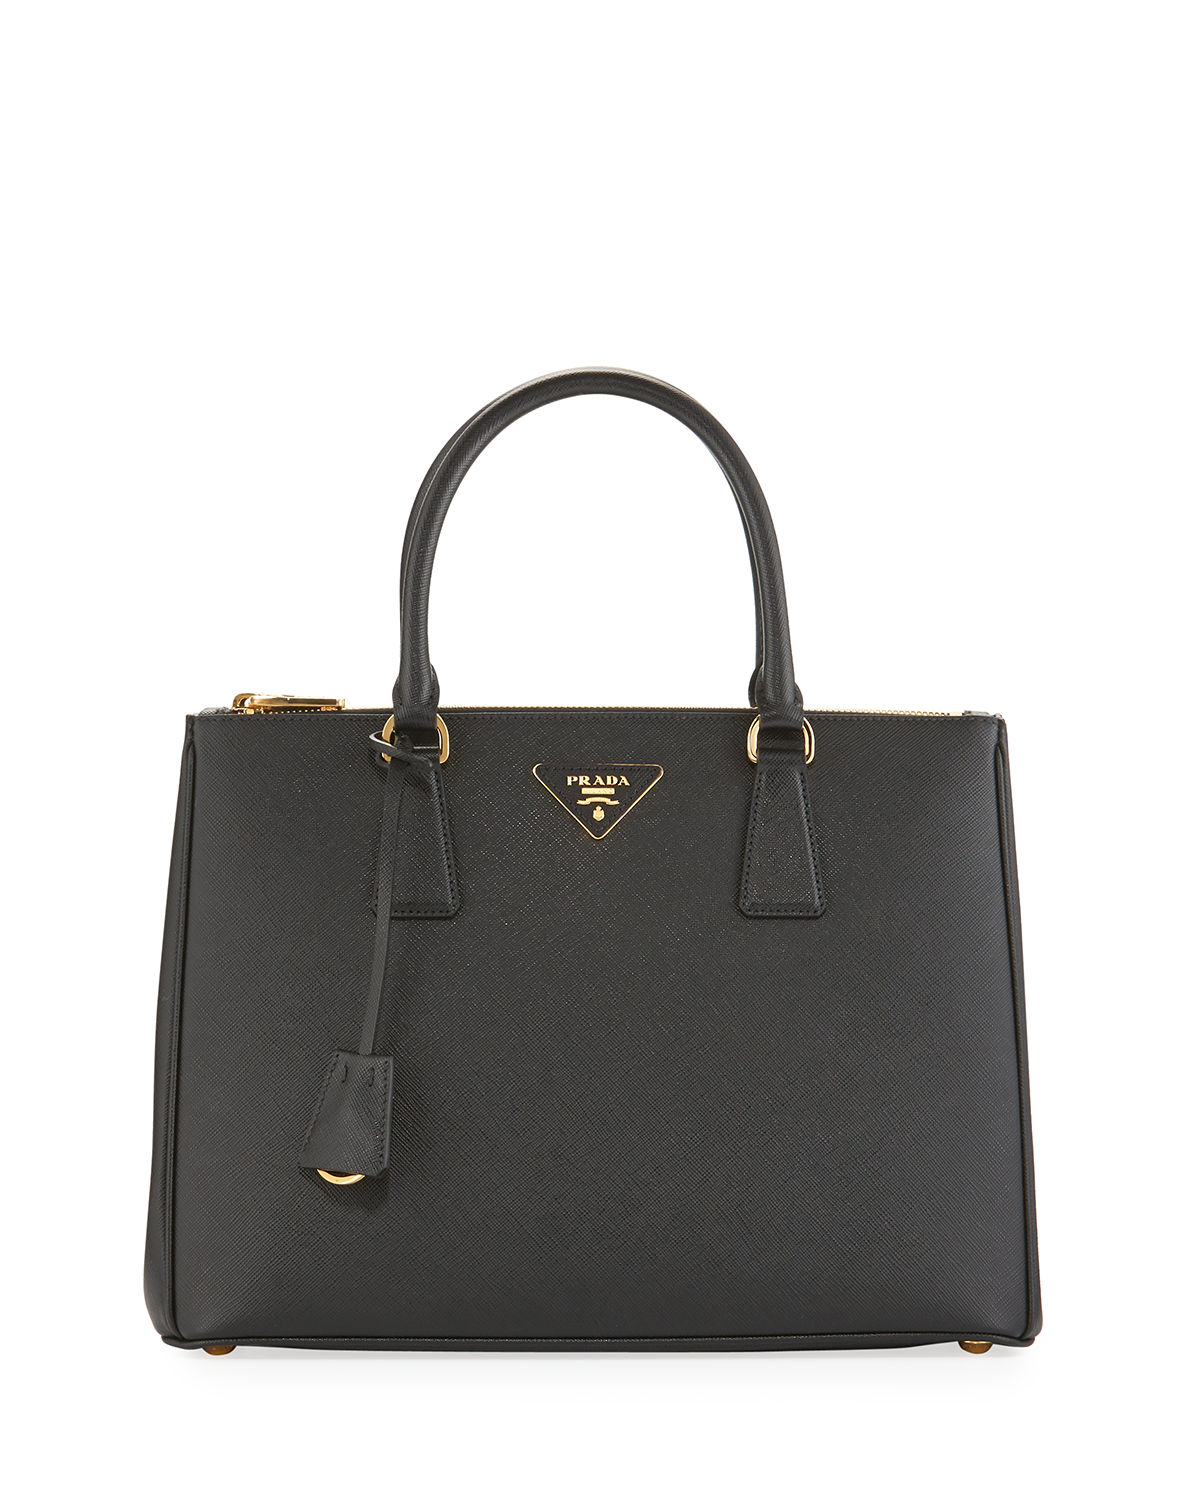 965d8d85473f Prada Galleria Medium Saffiano Tote Bag